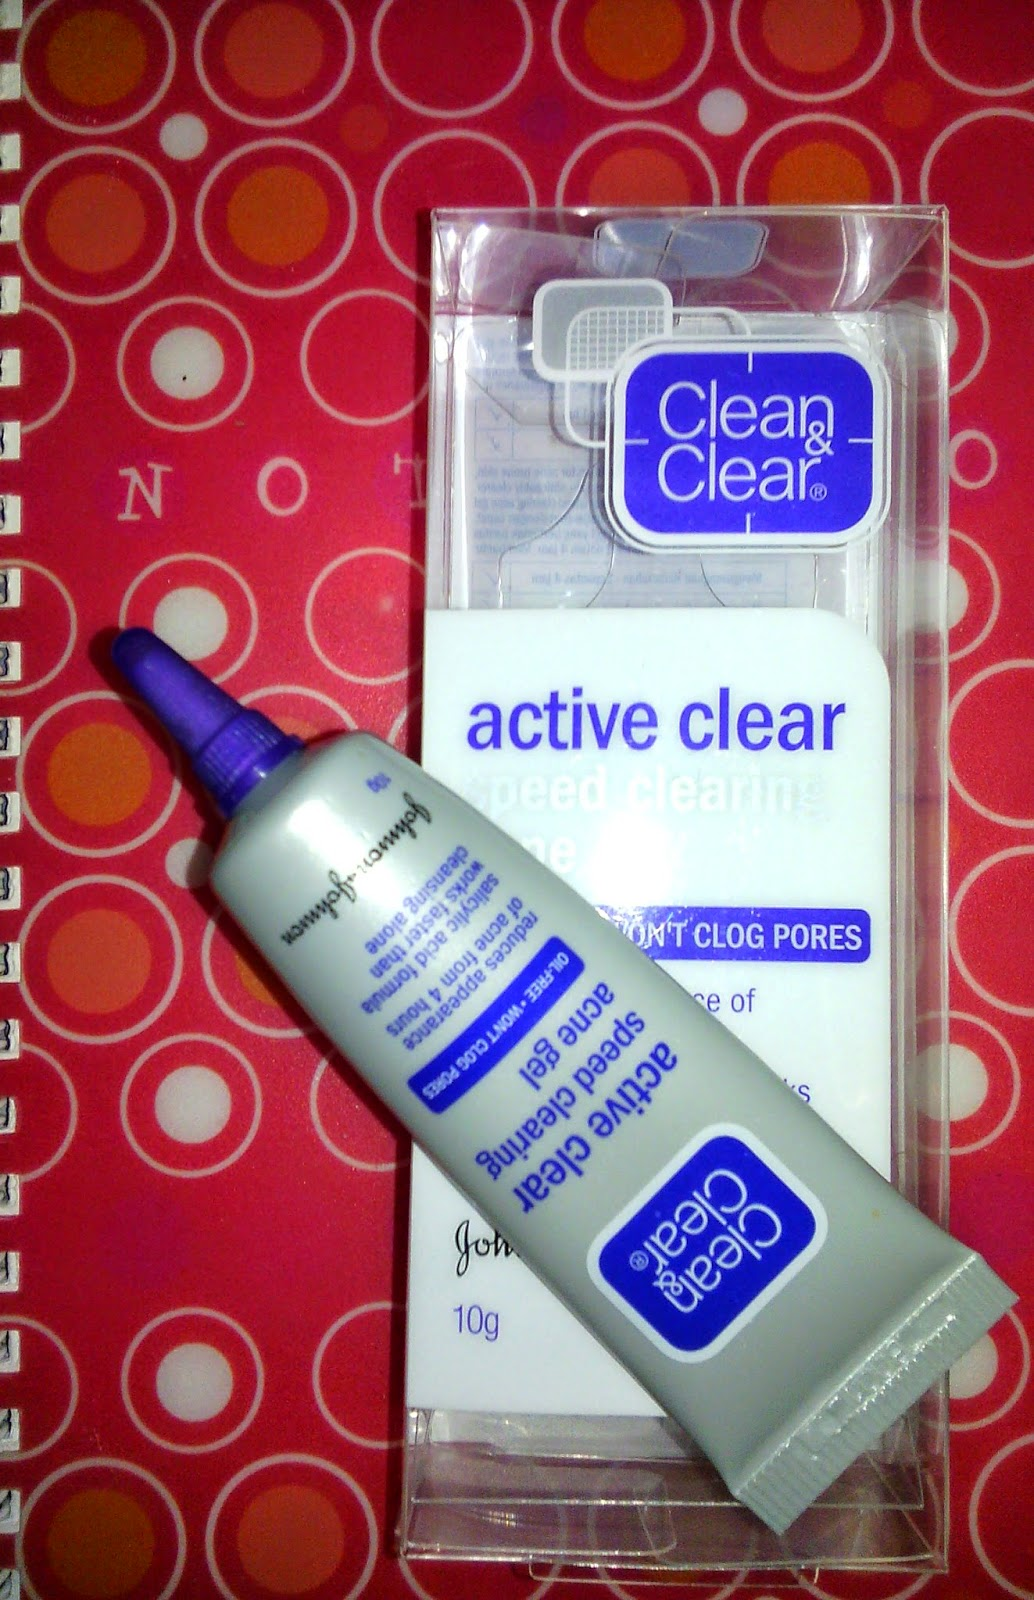 Desember 2014 Jejak Venus Ovale Micellar Water Acne Skin 200ml Khusus Area Pulau Jawa Actually I Also Use It For Small And Yes Works When This Product At The Night Before Sleep In Morning Become Dry